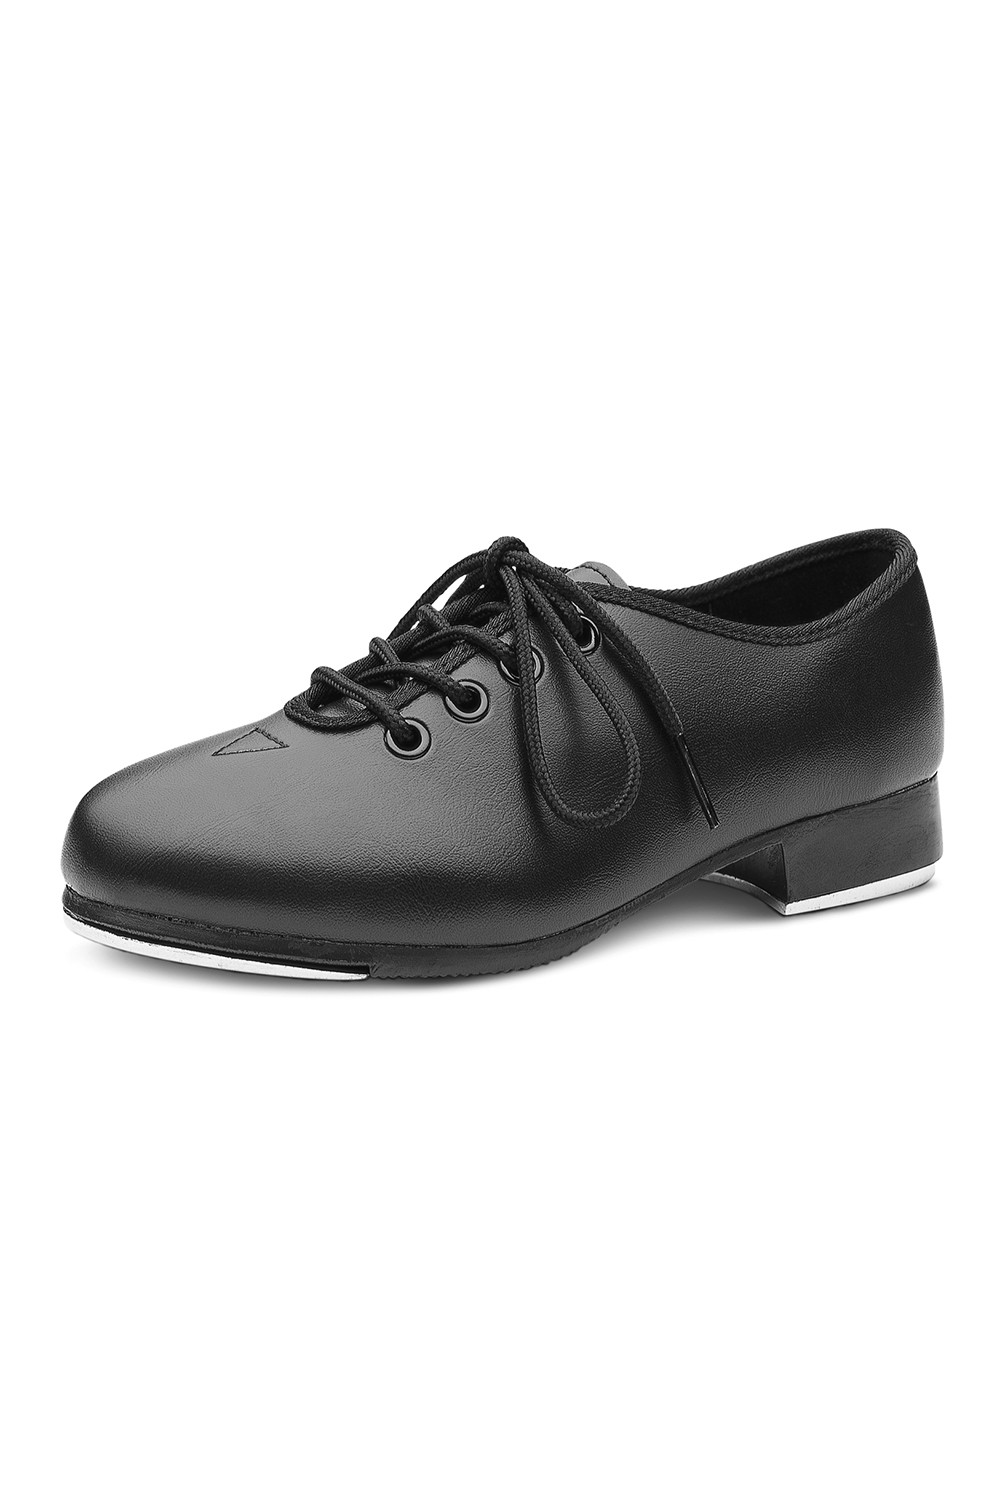 Dance Now Student Jazz Tap Women's Tap Shoes